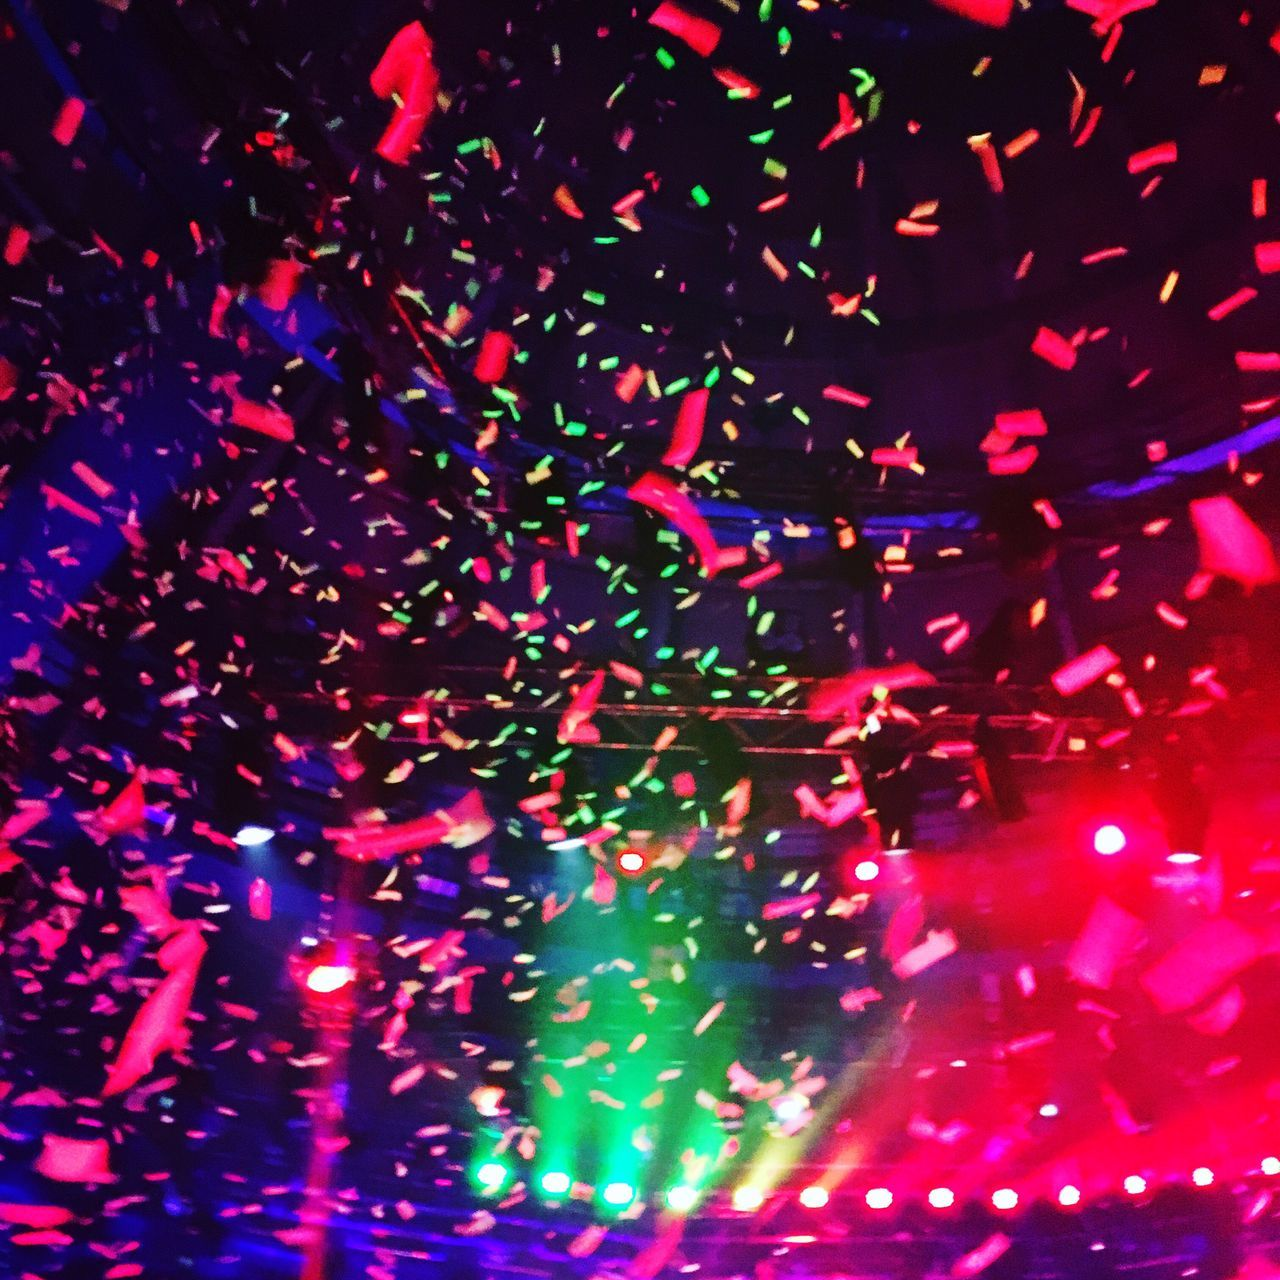 multi colored, illuminated, arts culture and entertainment, pattern, nightclub, music, party - social event, indoors, backgrounds, nightlife, night, close-up, no people, disco lights, black background